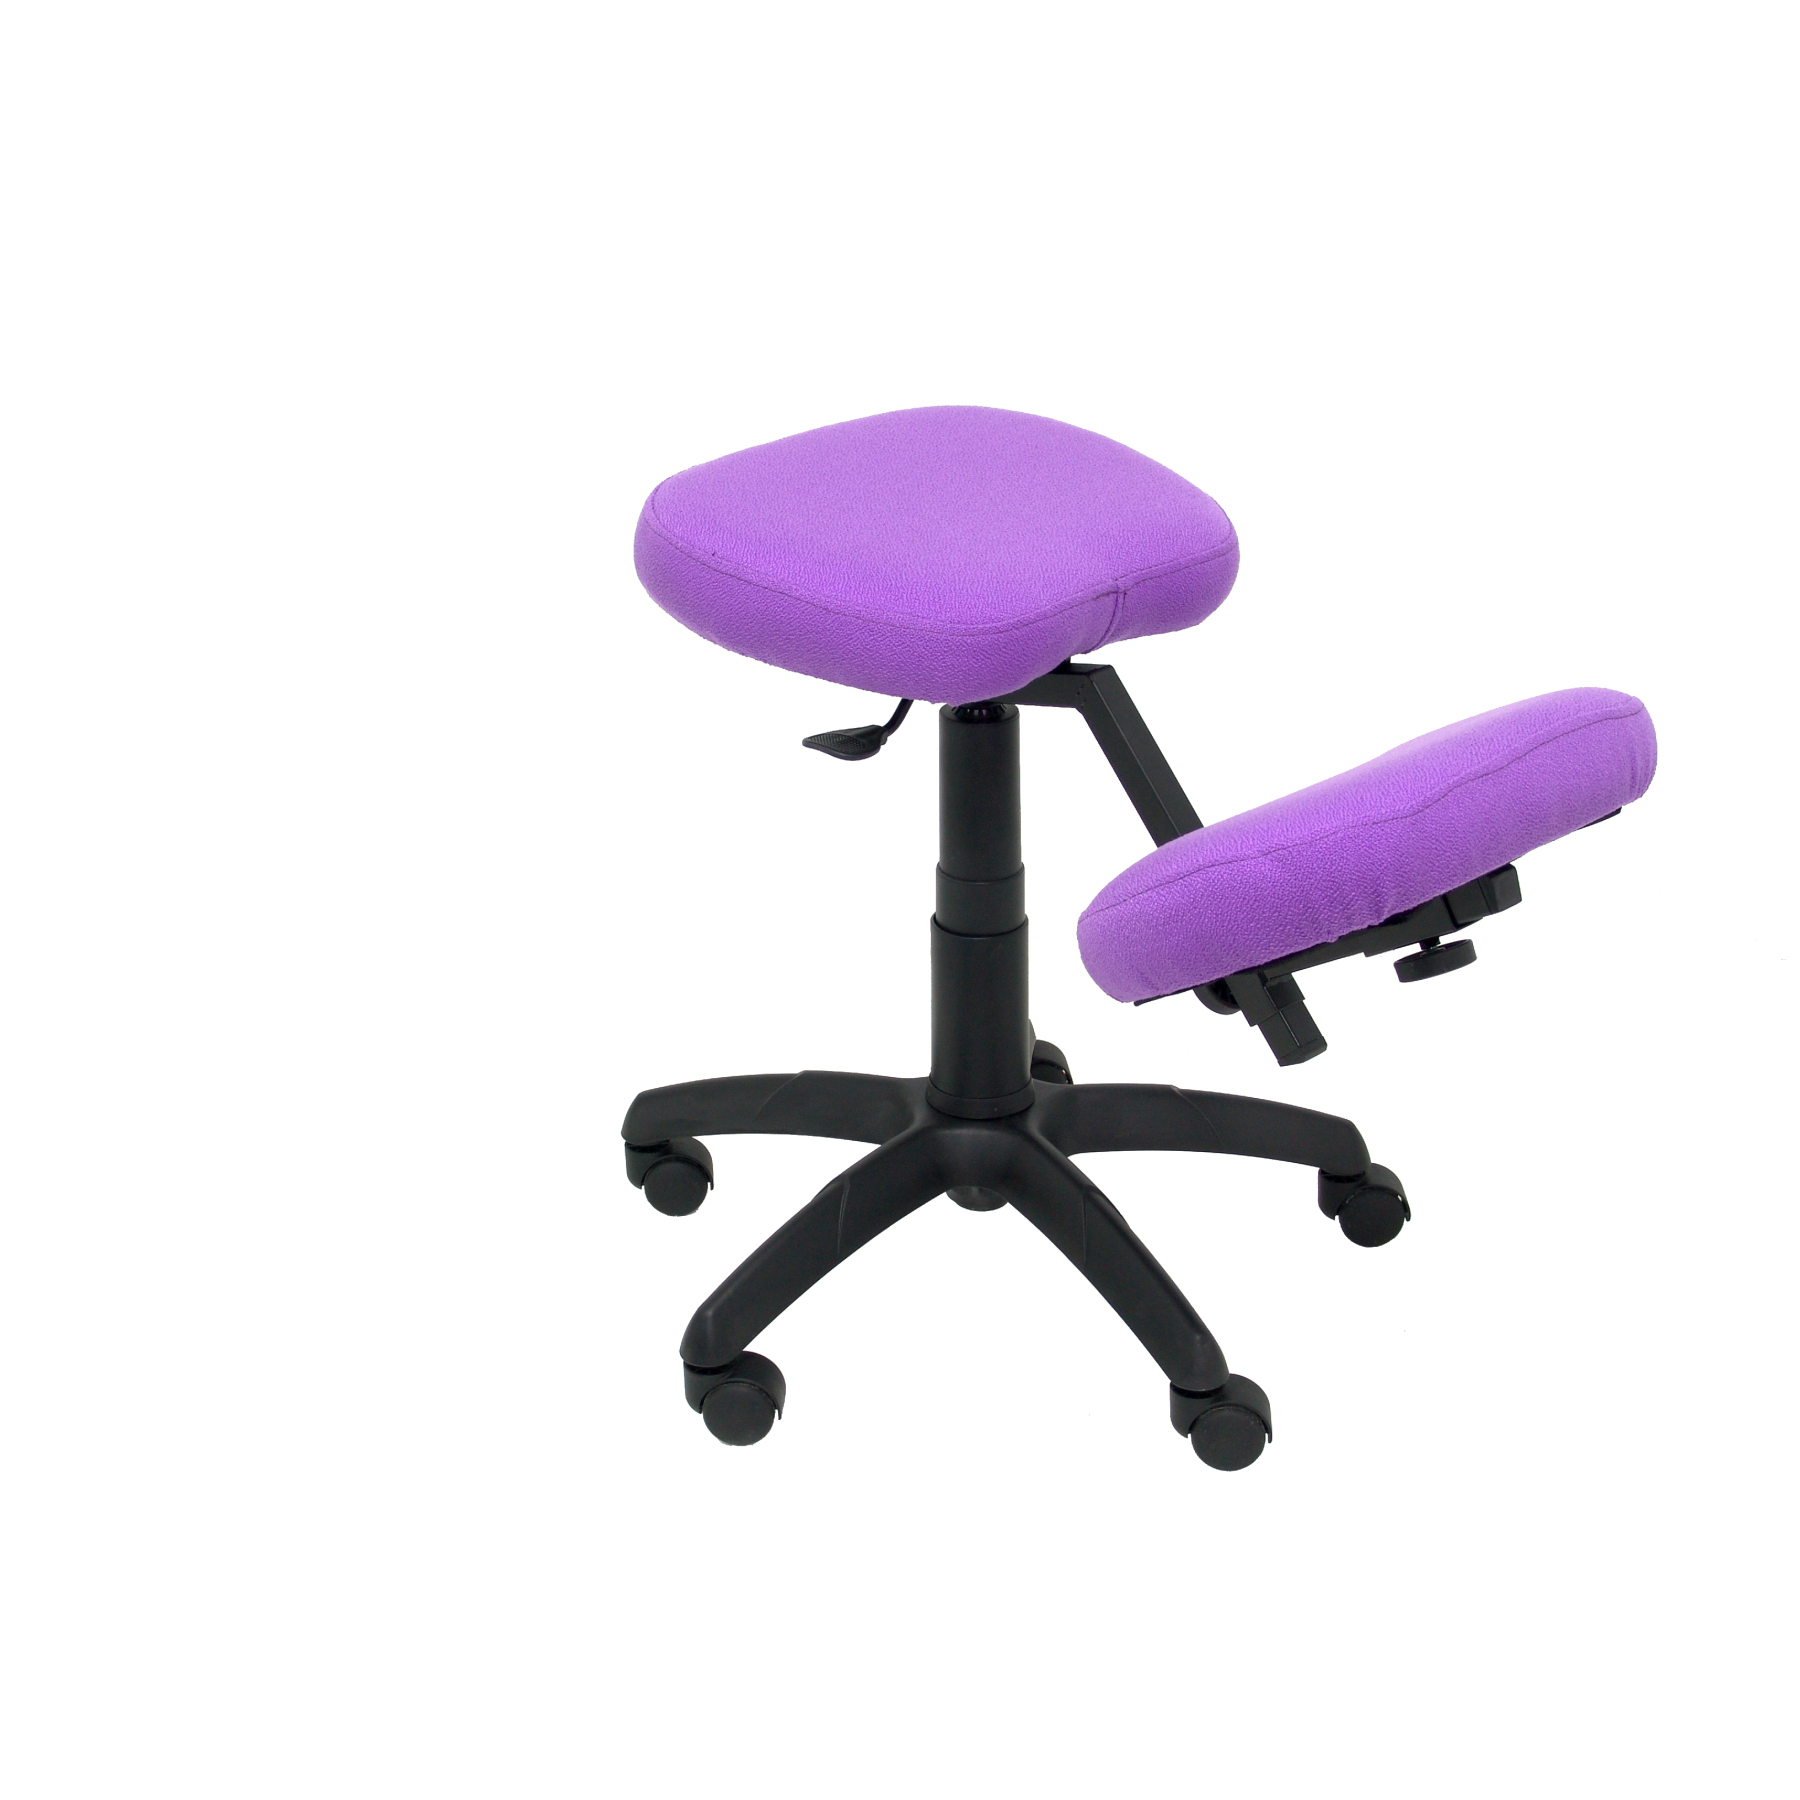 Office's Stool Ergonomic Swivel And Dimmable In High Altitude Up Seat Upholstered In BALI Tissue Color Lilac (KNEE R